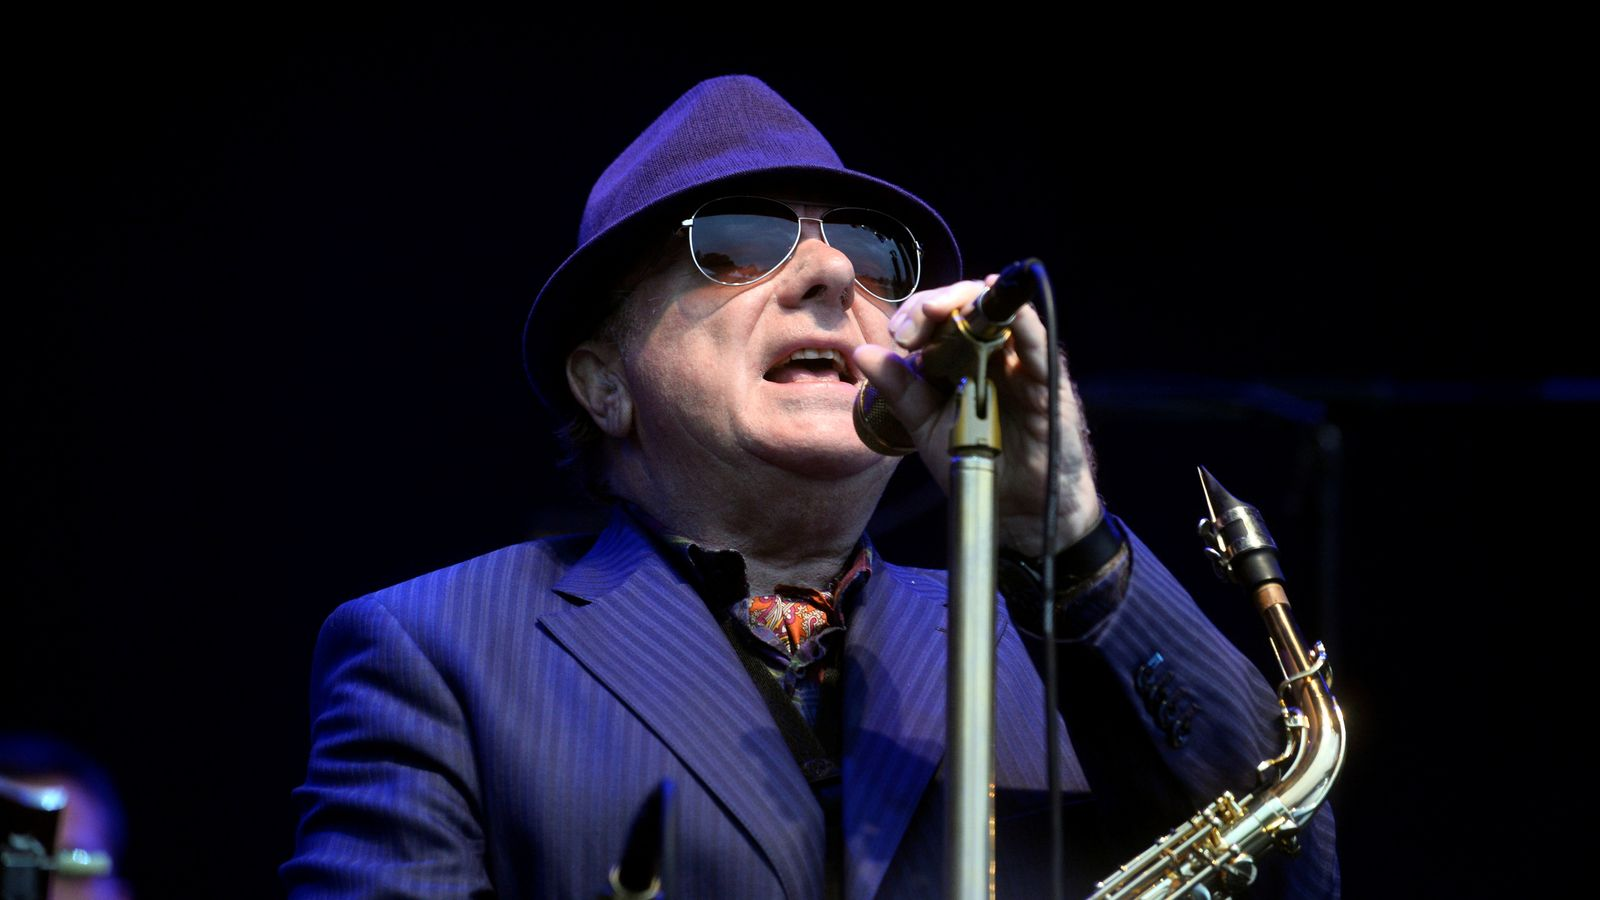 Van Morrison launching legal action against ban on live music thumbnail